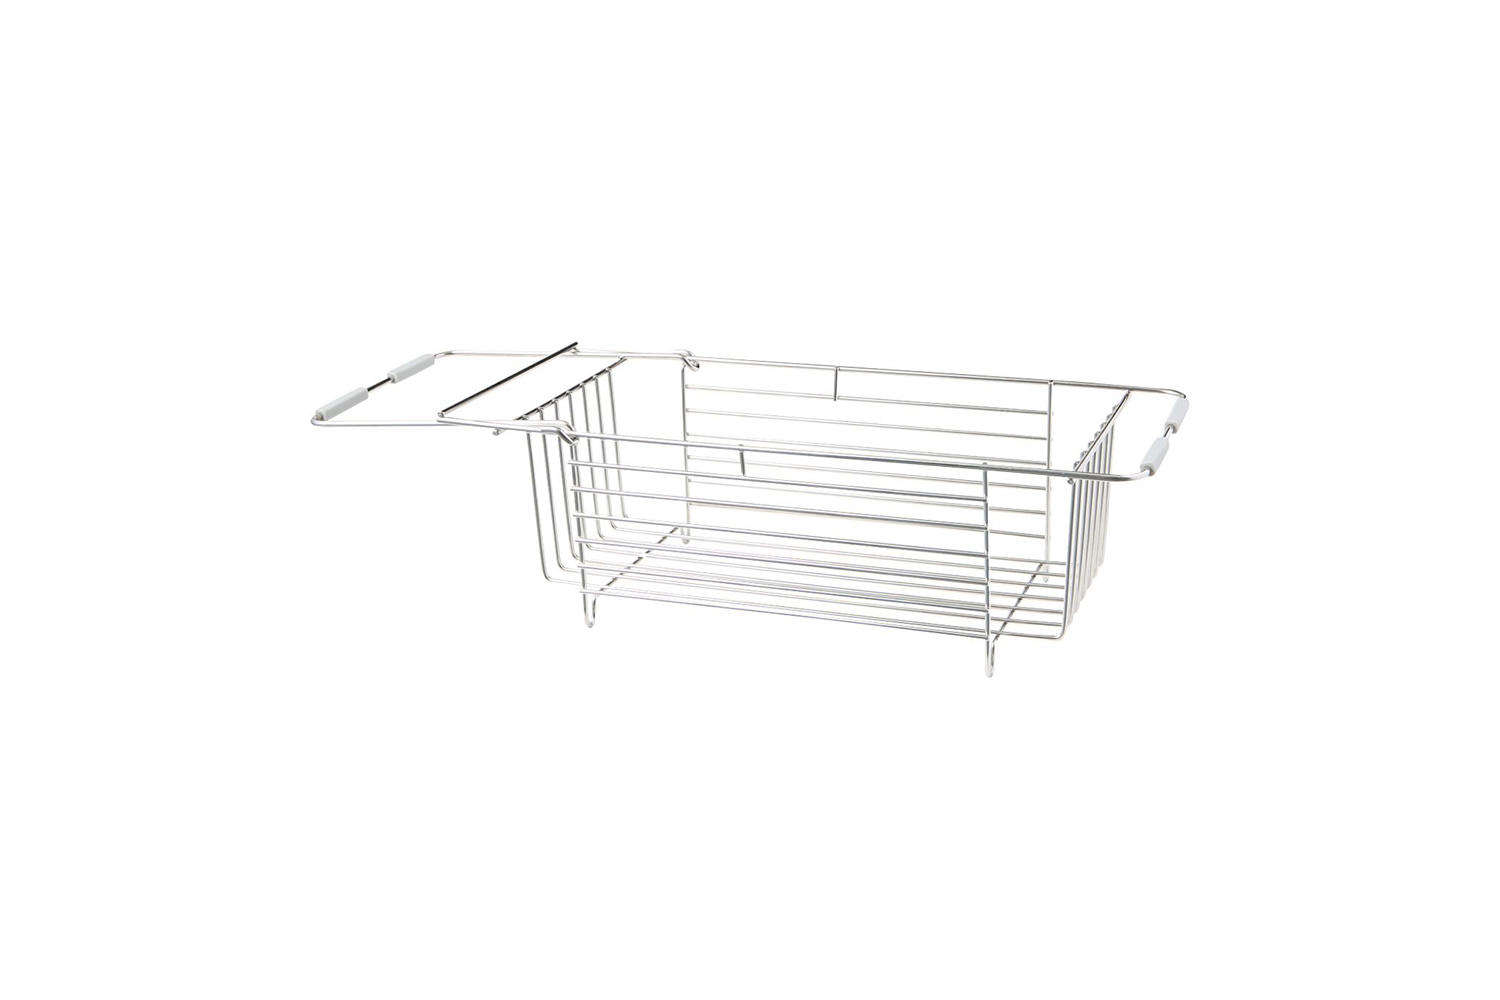 The Muji Stainless Steel Basket Sliding Type has an extension that fits to the sink; $38 at Muji.